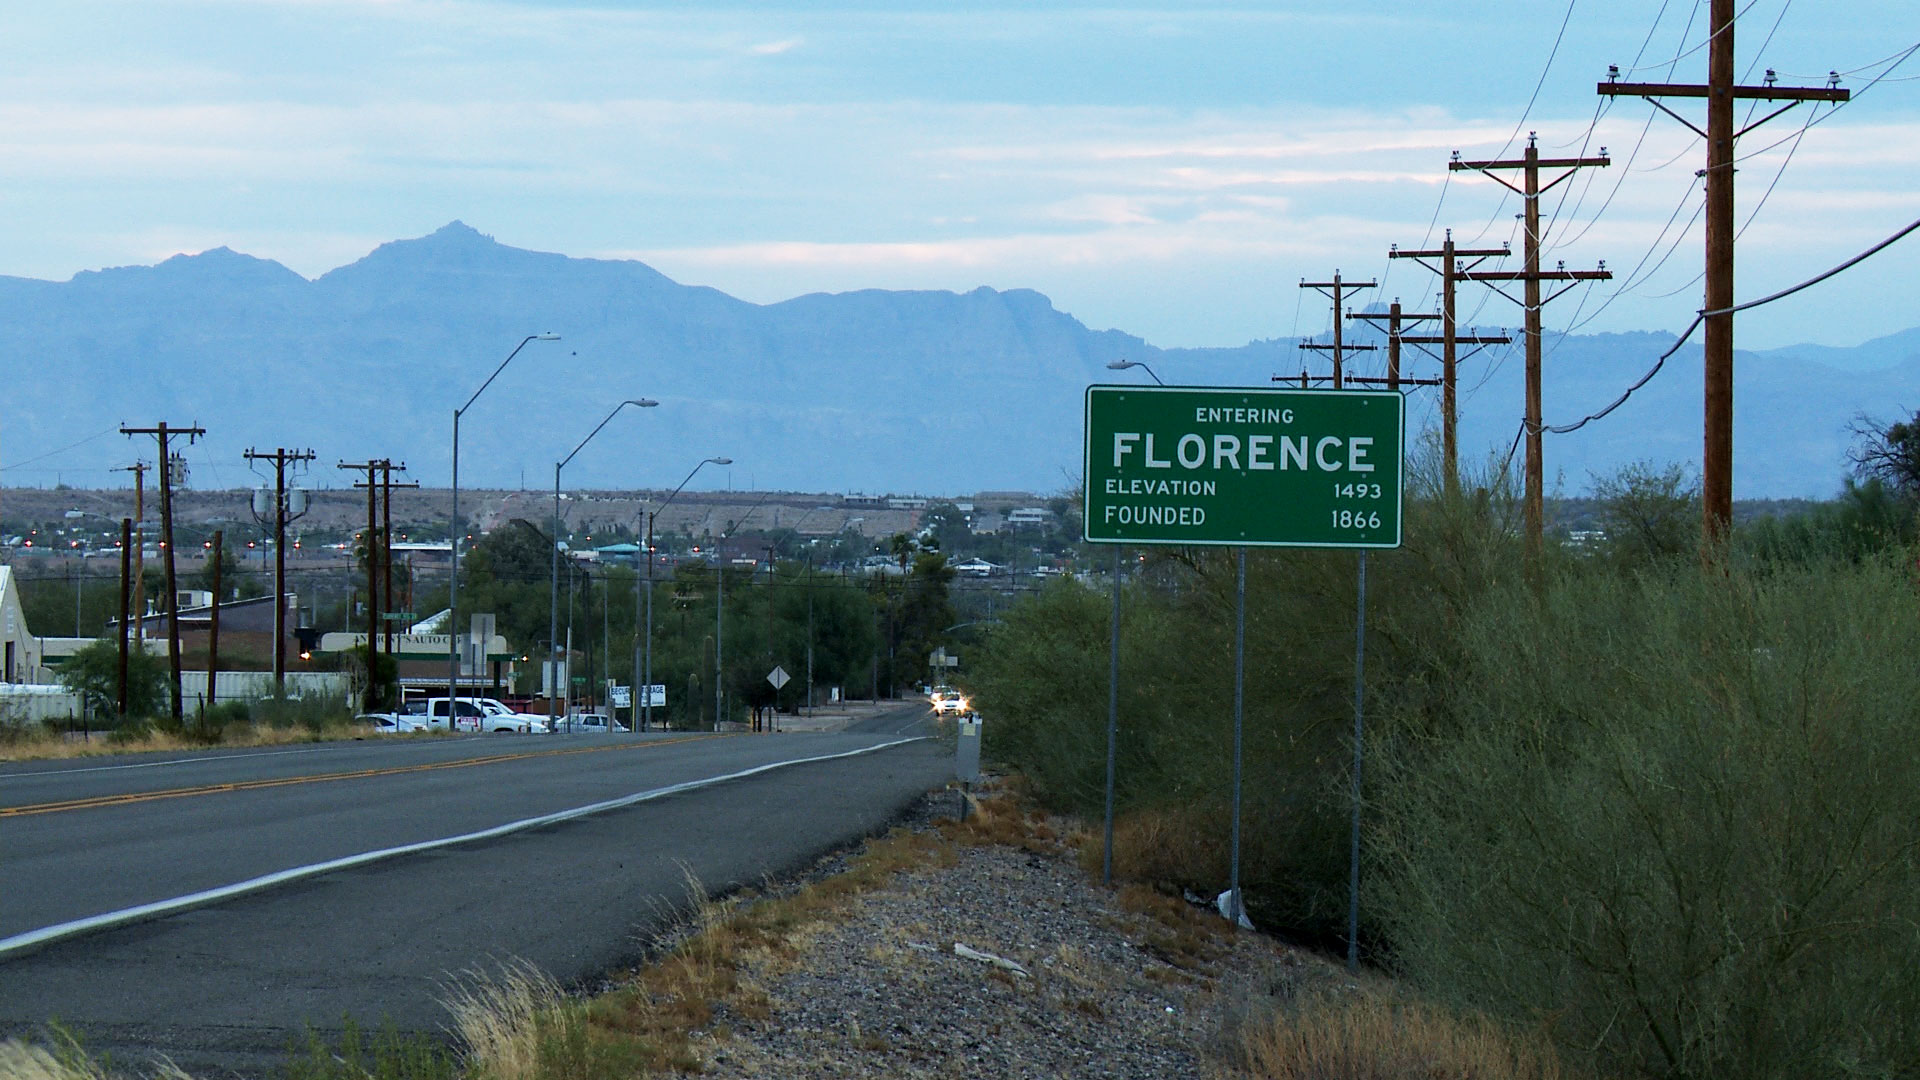 A sign for the town of Florence.